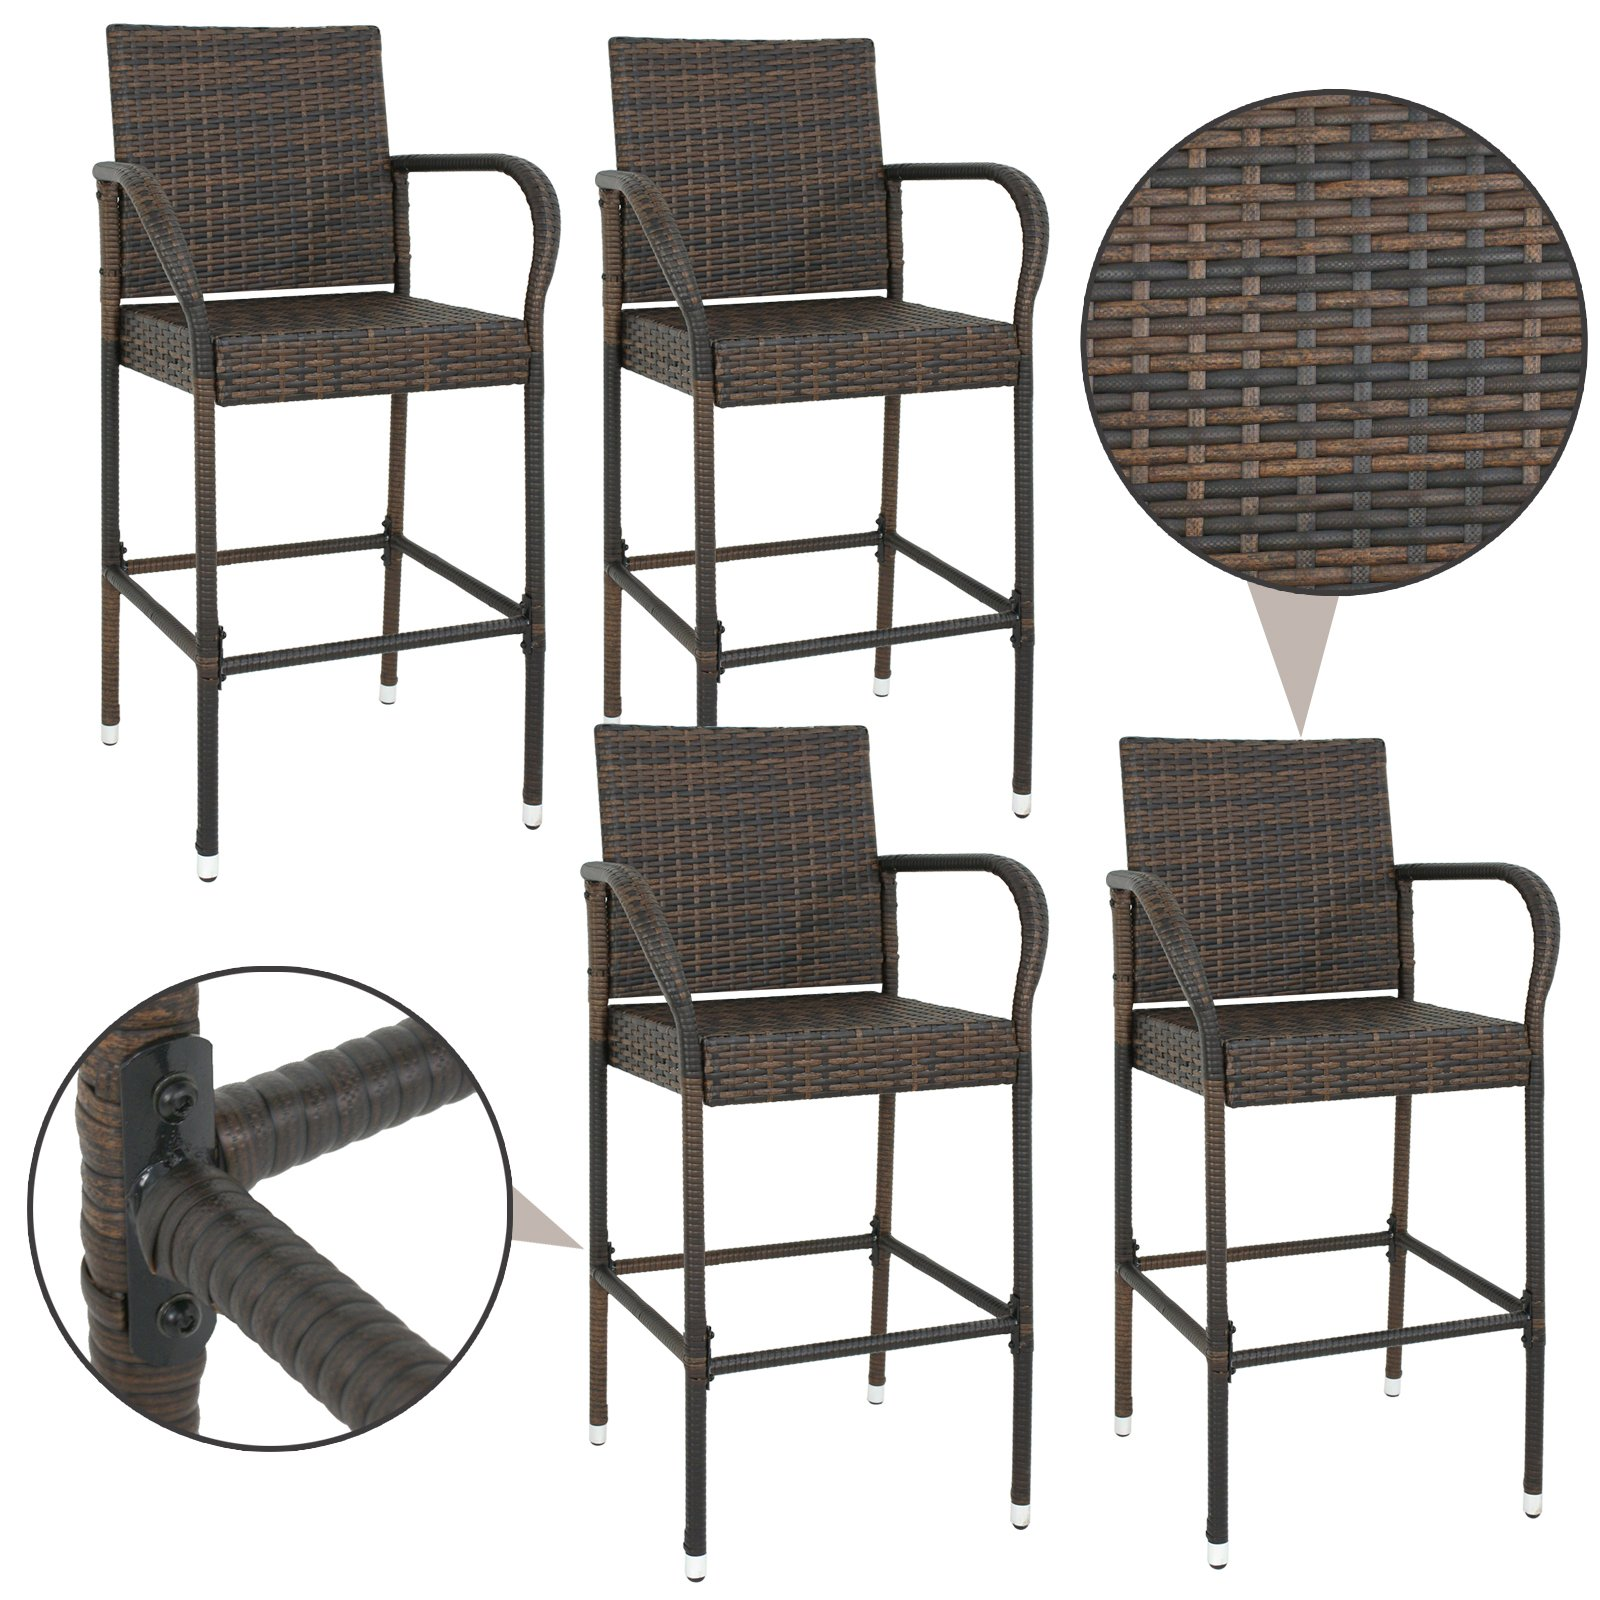 SUPER DEAL Wicker Bar Stool Outdoor Backyard Rattan Chair Patio Furniture Chair w/Iron Frame, Armrest and Footrest, Set of 4 by SUPER DEAL (Image #2)